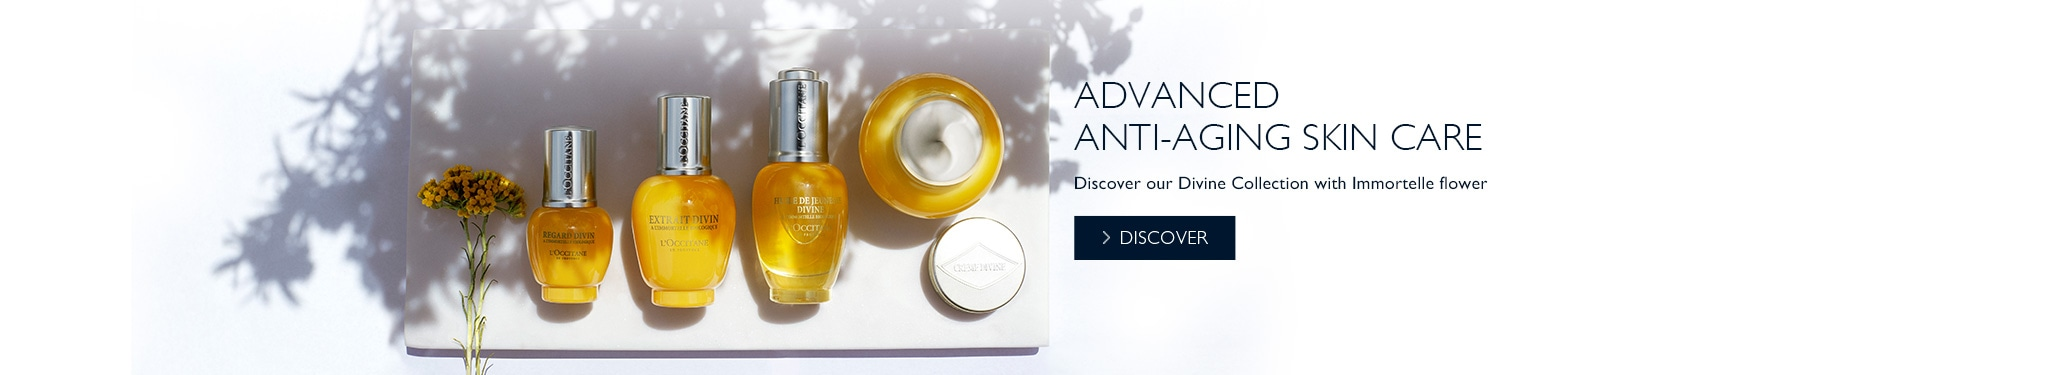 Advanced anti-aging skin care